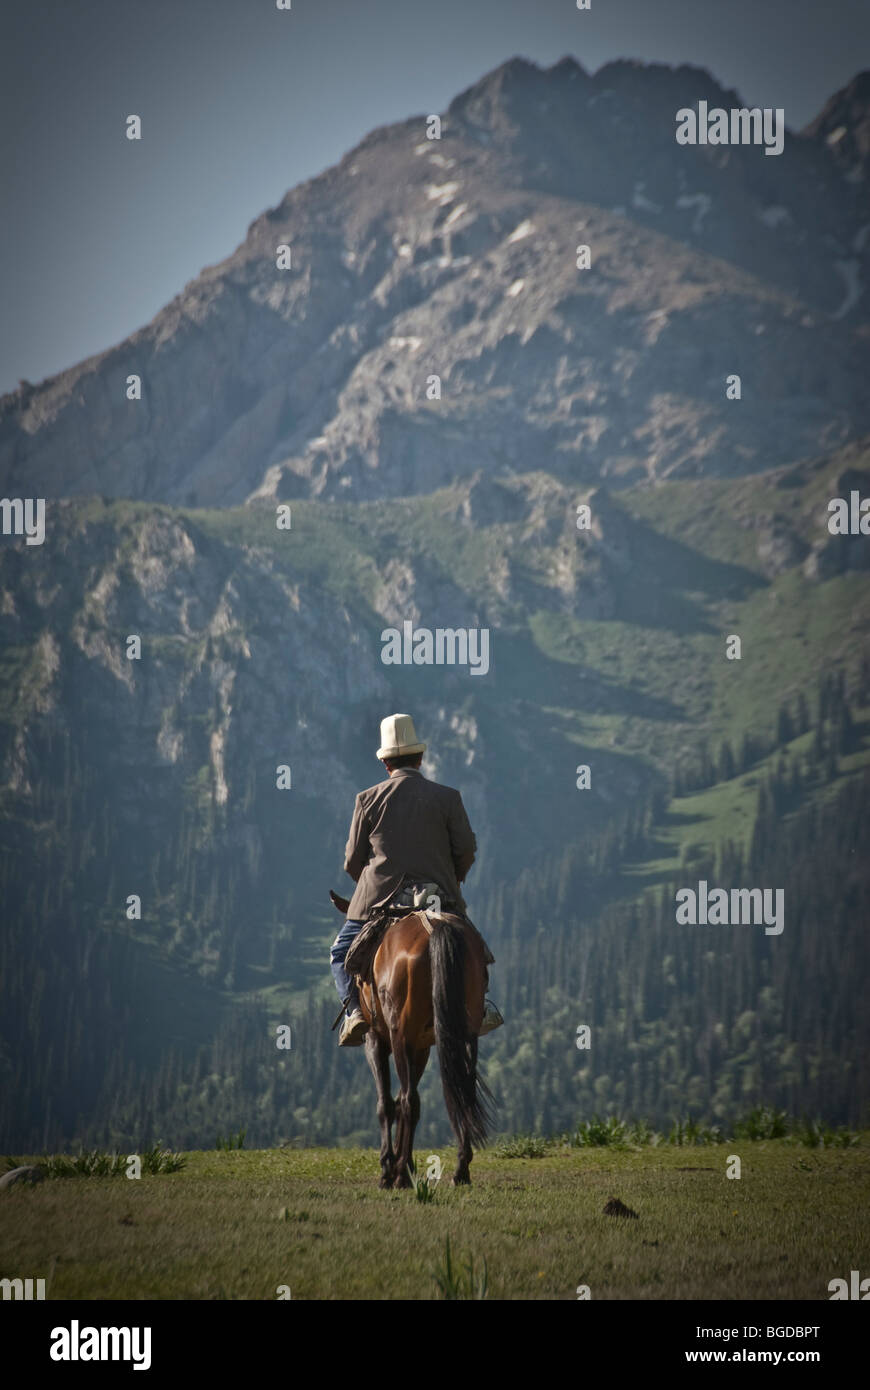 kyrgyz horseman in the mountains around karakol, Kyrgyzstan Stock Photo